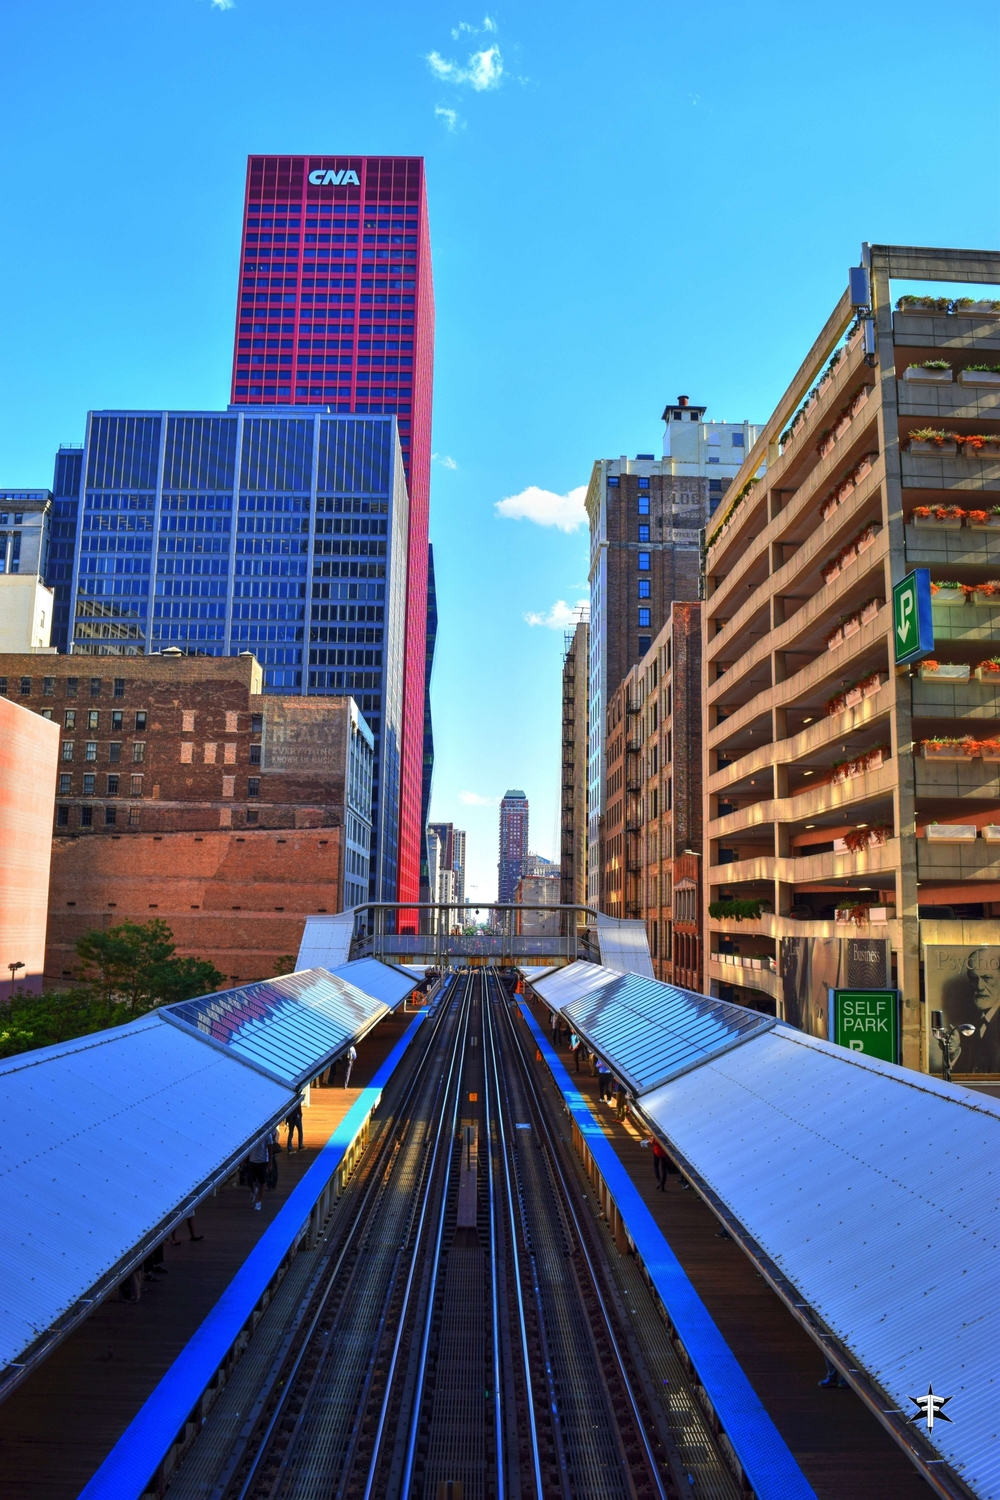 batch_cta chicago wabash loop train contrast color buildings saturated.jpg